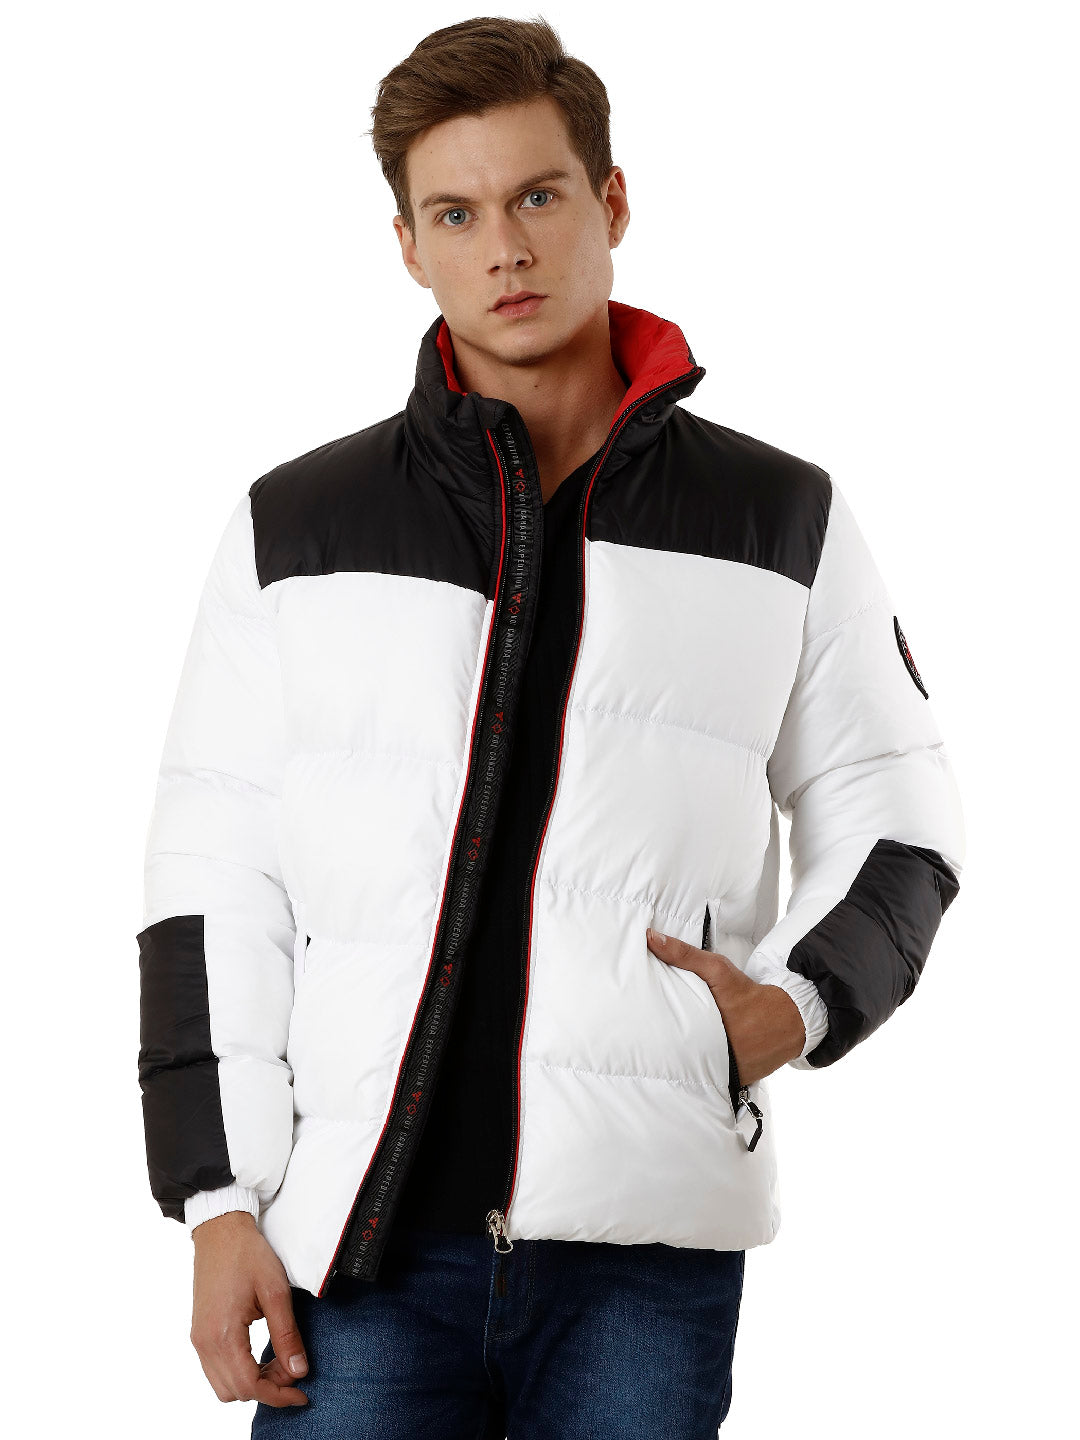 White and Black Poly-Puffer Men's Jacket - VOI x CANADA